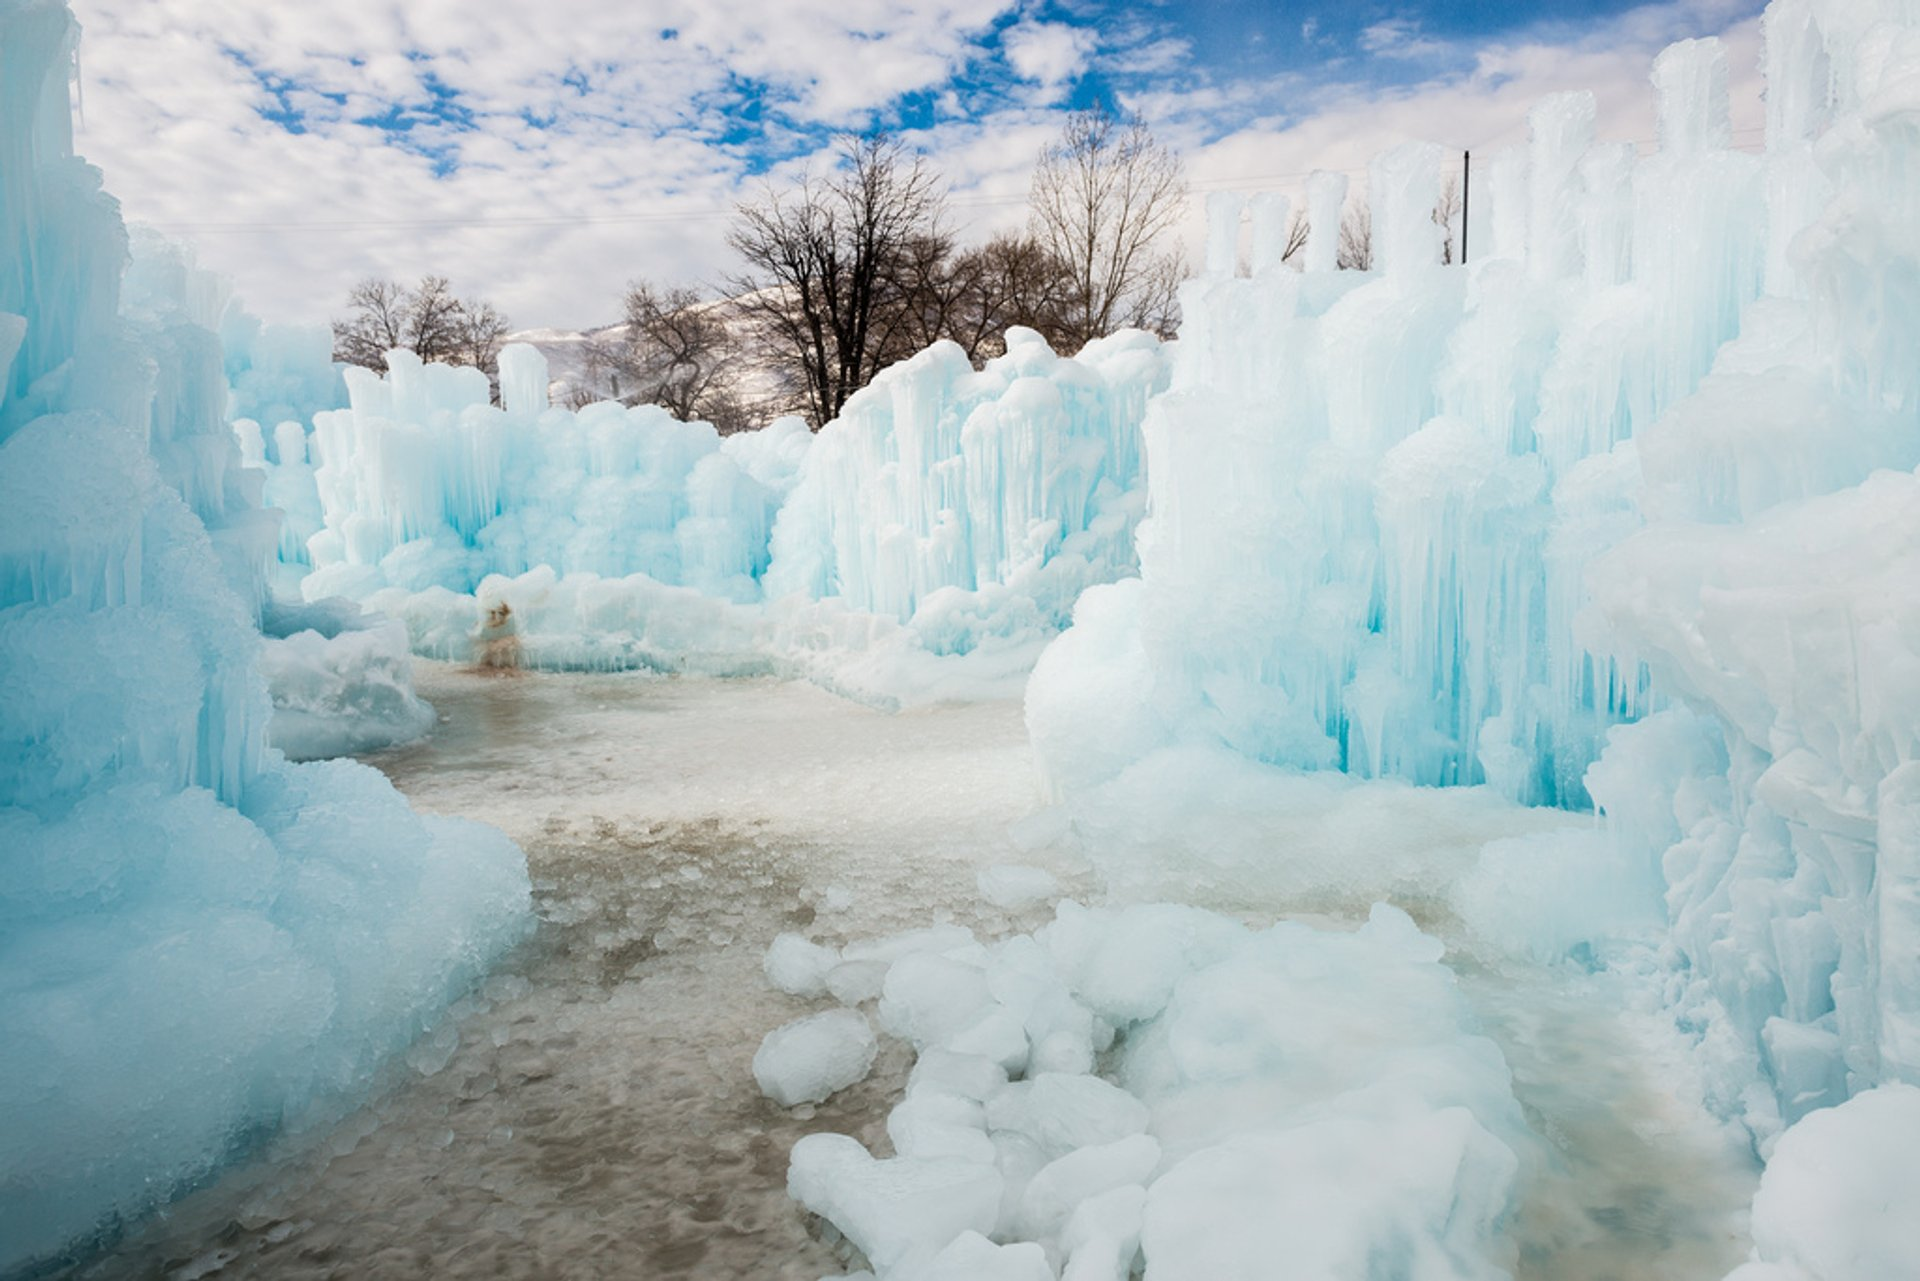 Ice Castle in Utah 2019